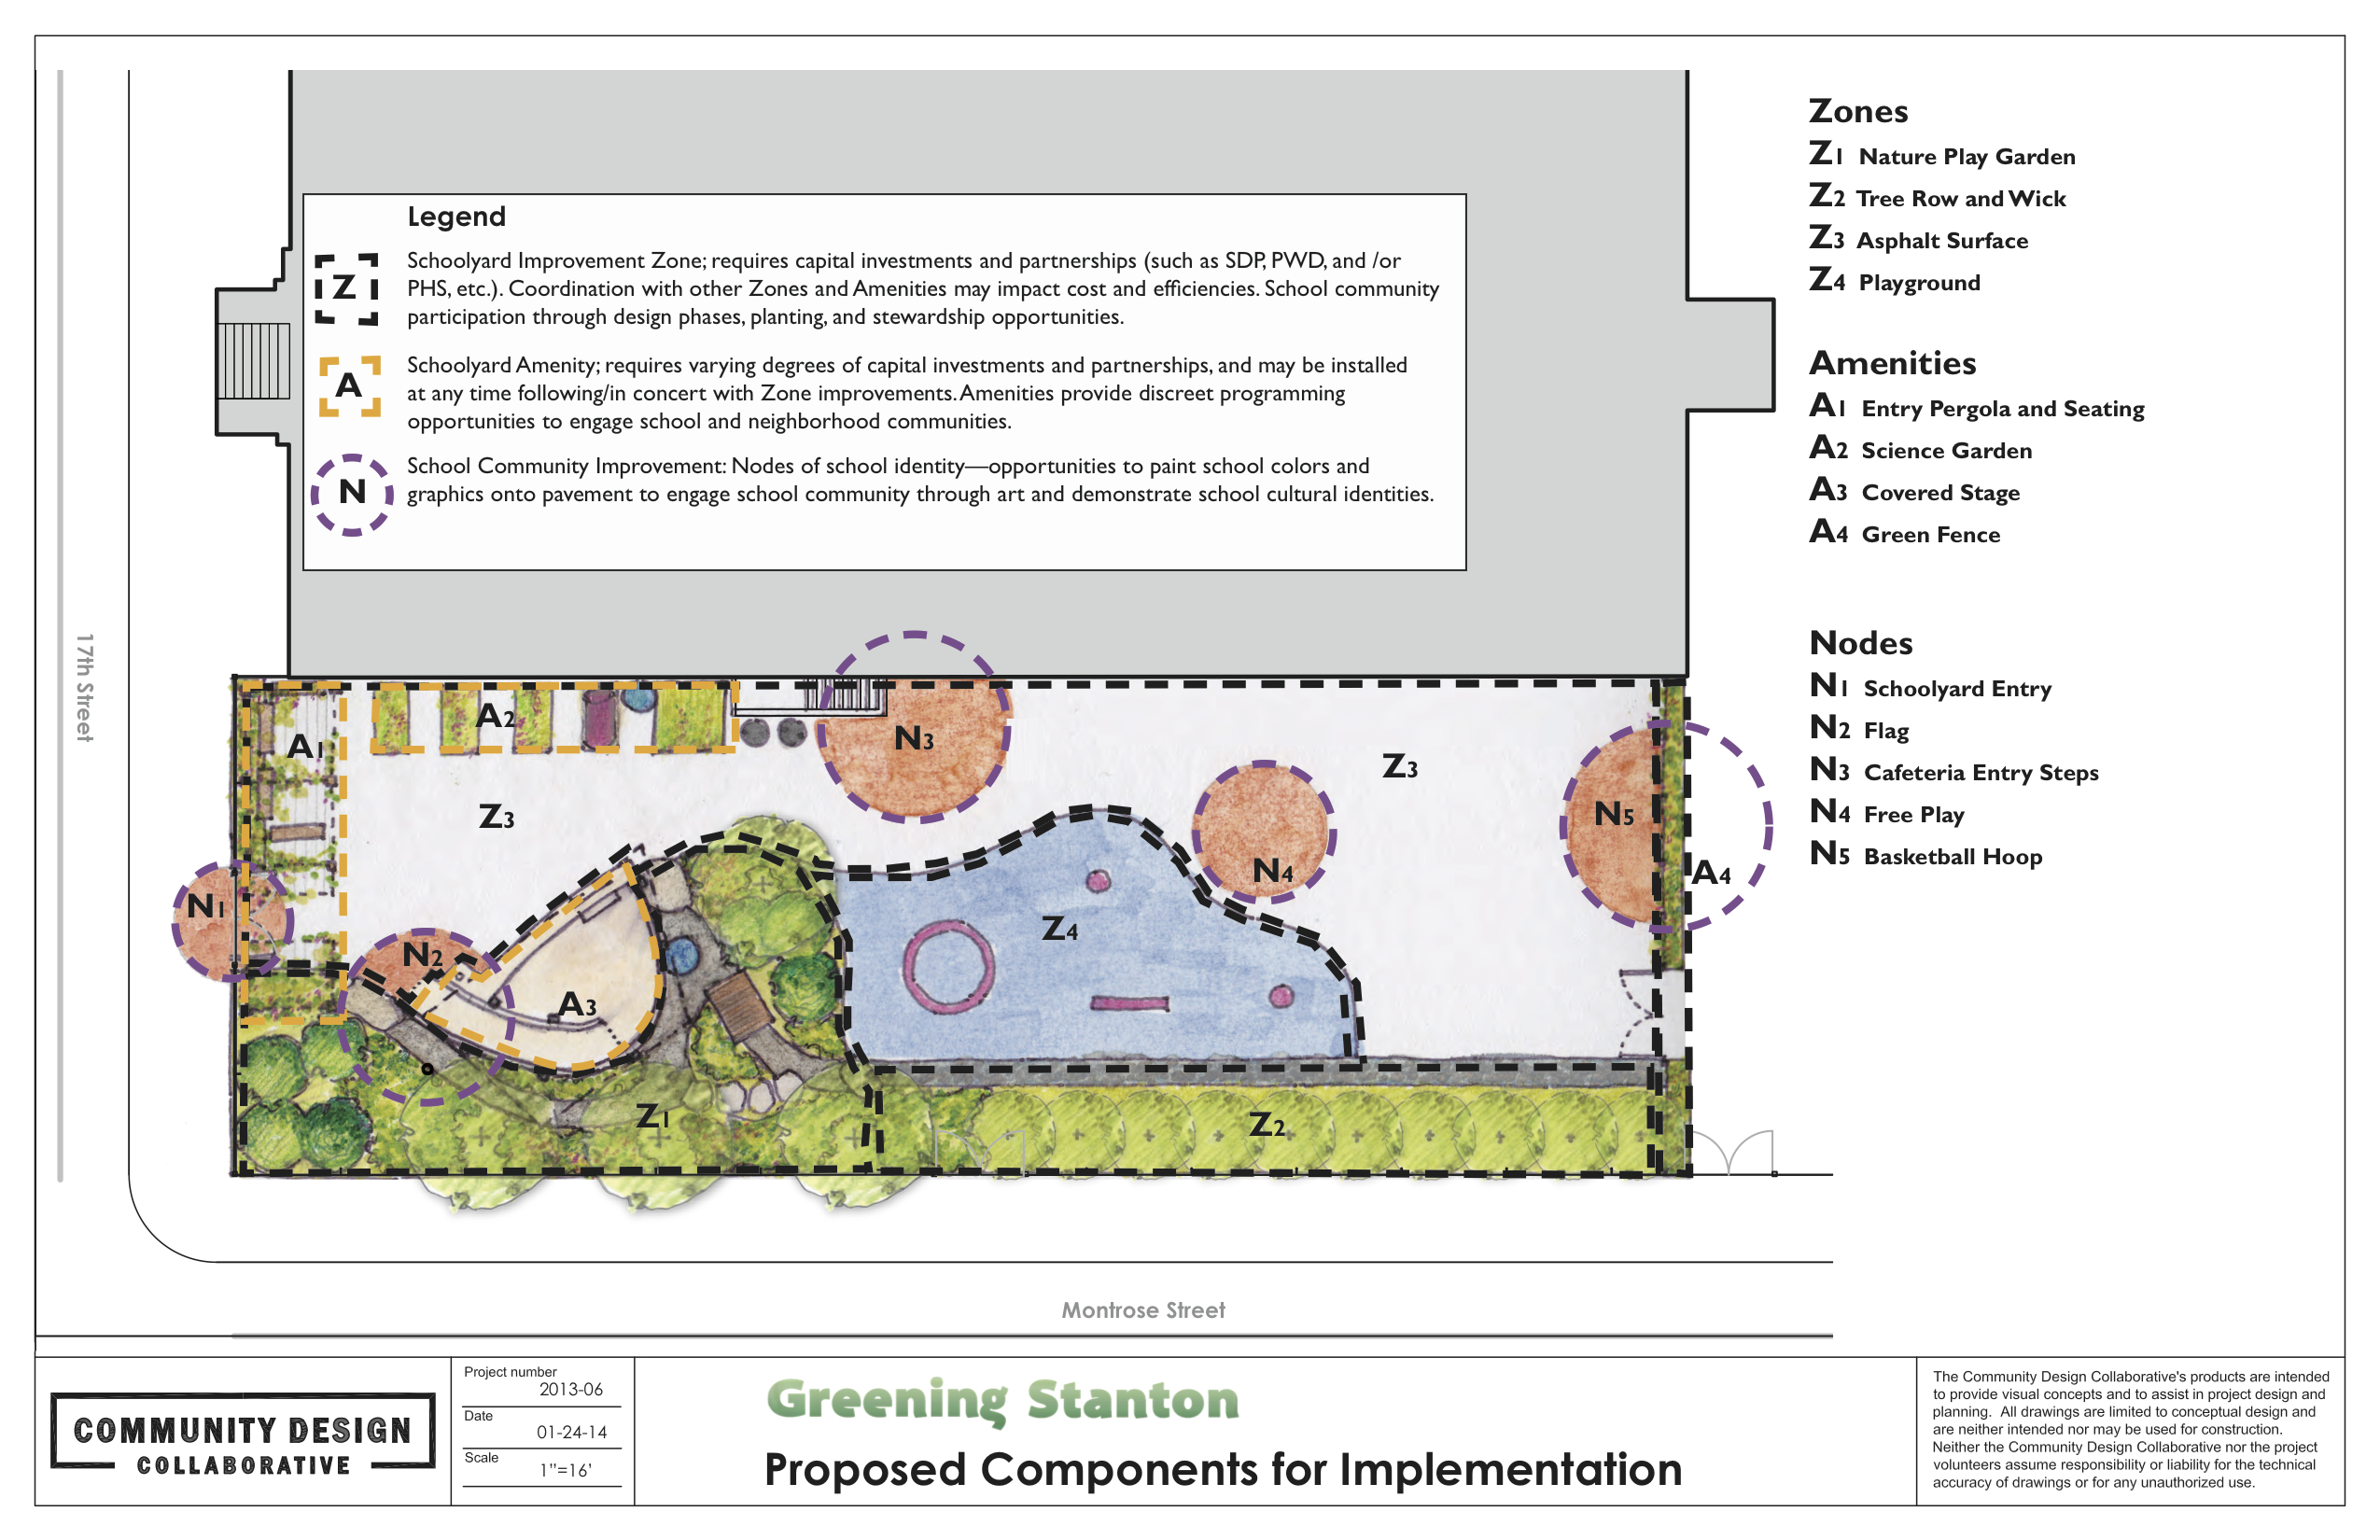 Greening Stanton component zones, Courtesy of the Community Design Collaborative